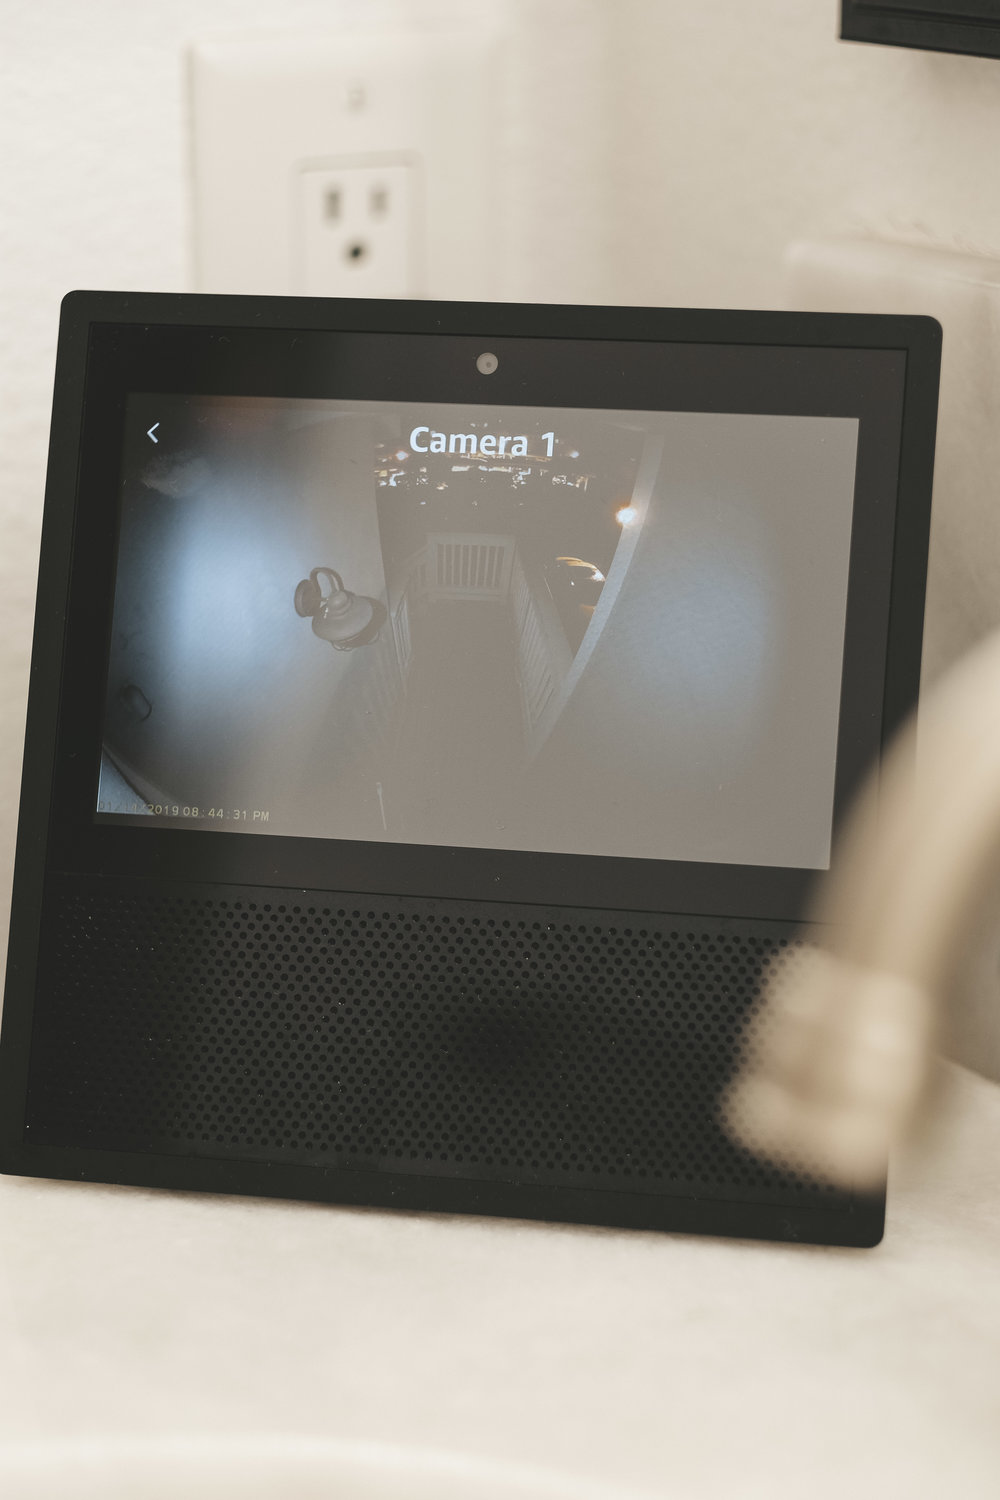 Panasonic HomeHawk front door camera review.  Panasonic HomeHawk shown on Amazon Echo Show.